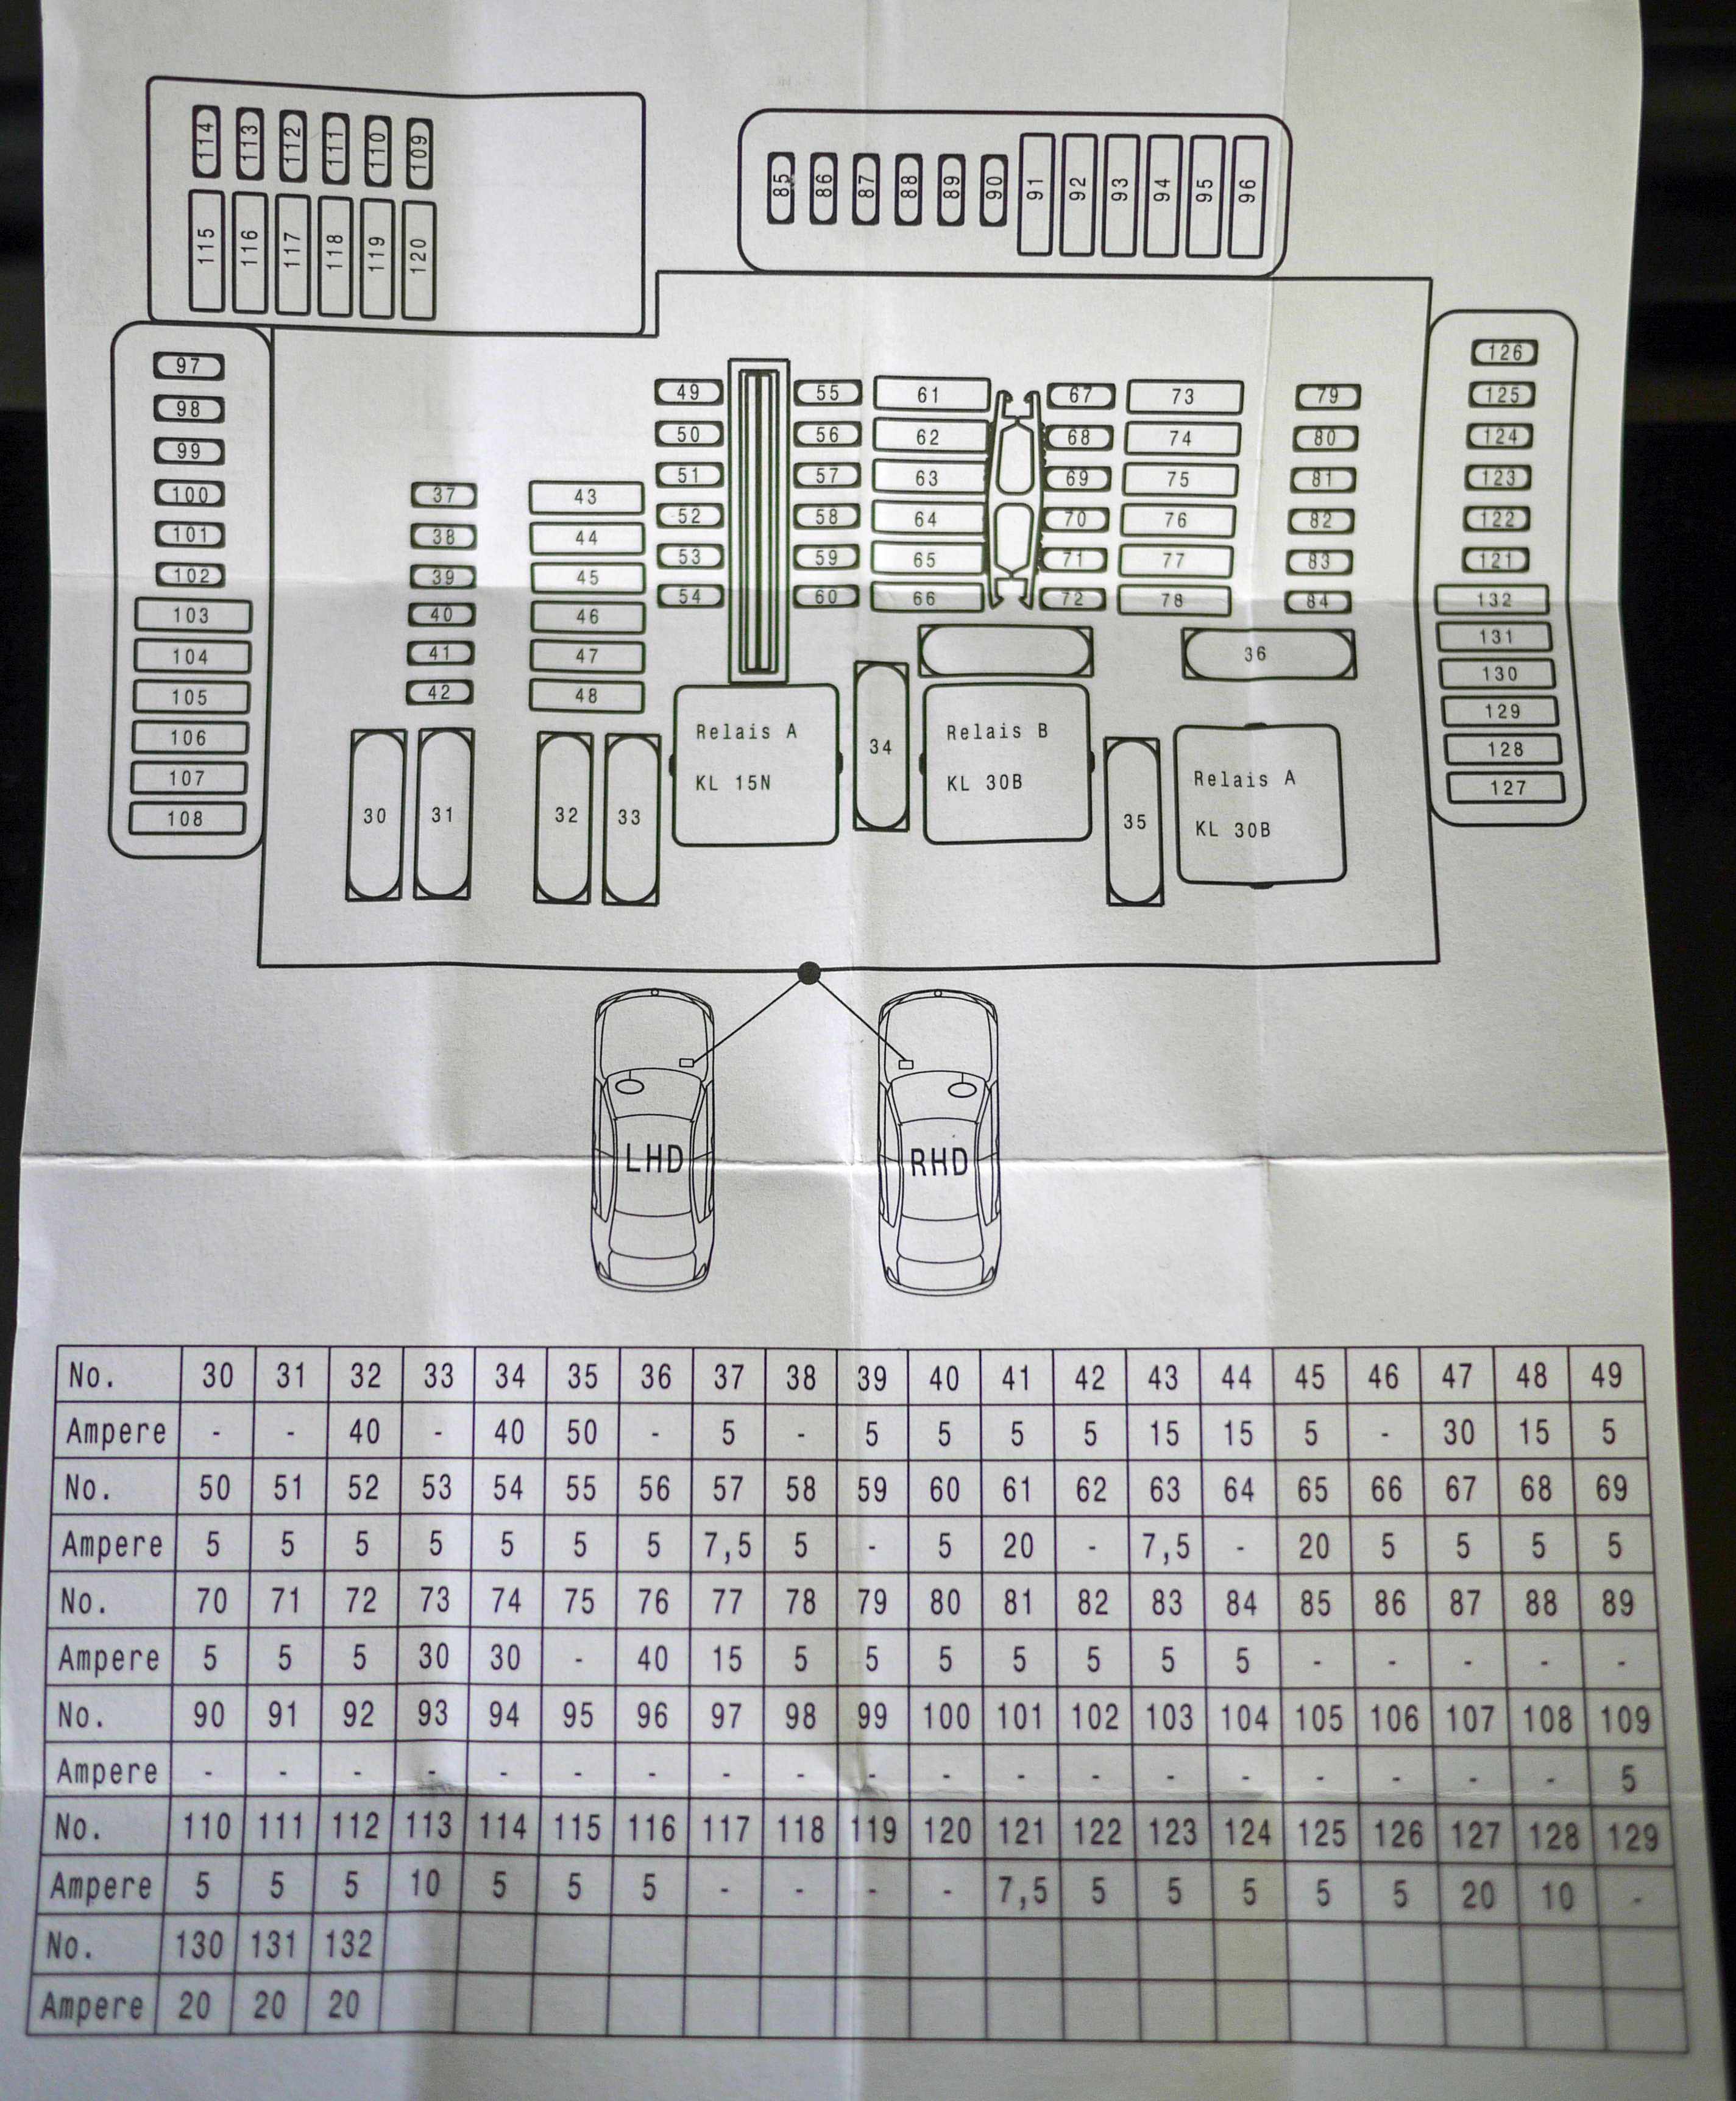 Re: Fuse box schematic